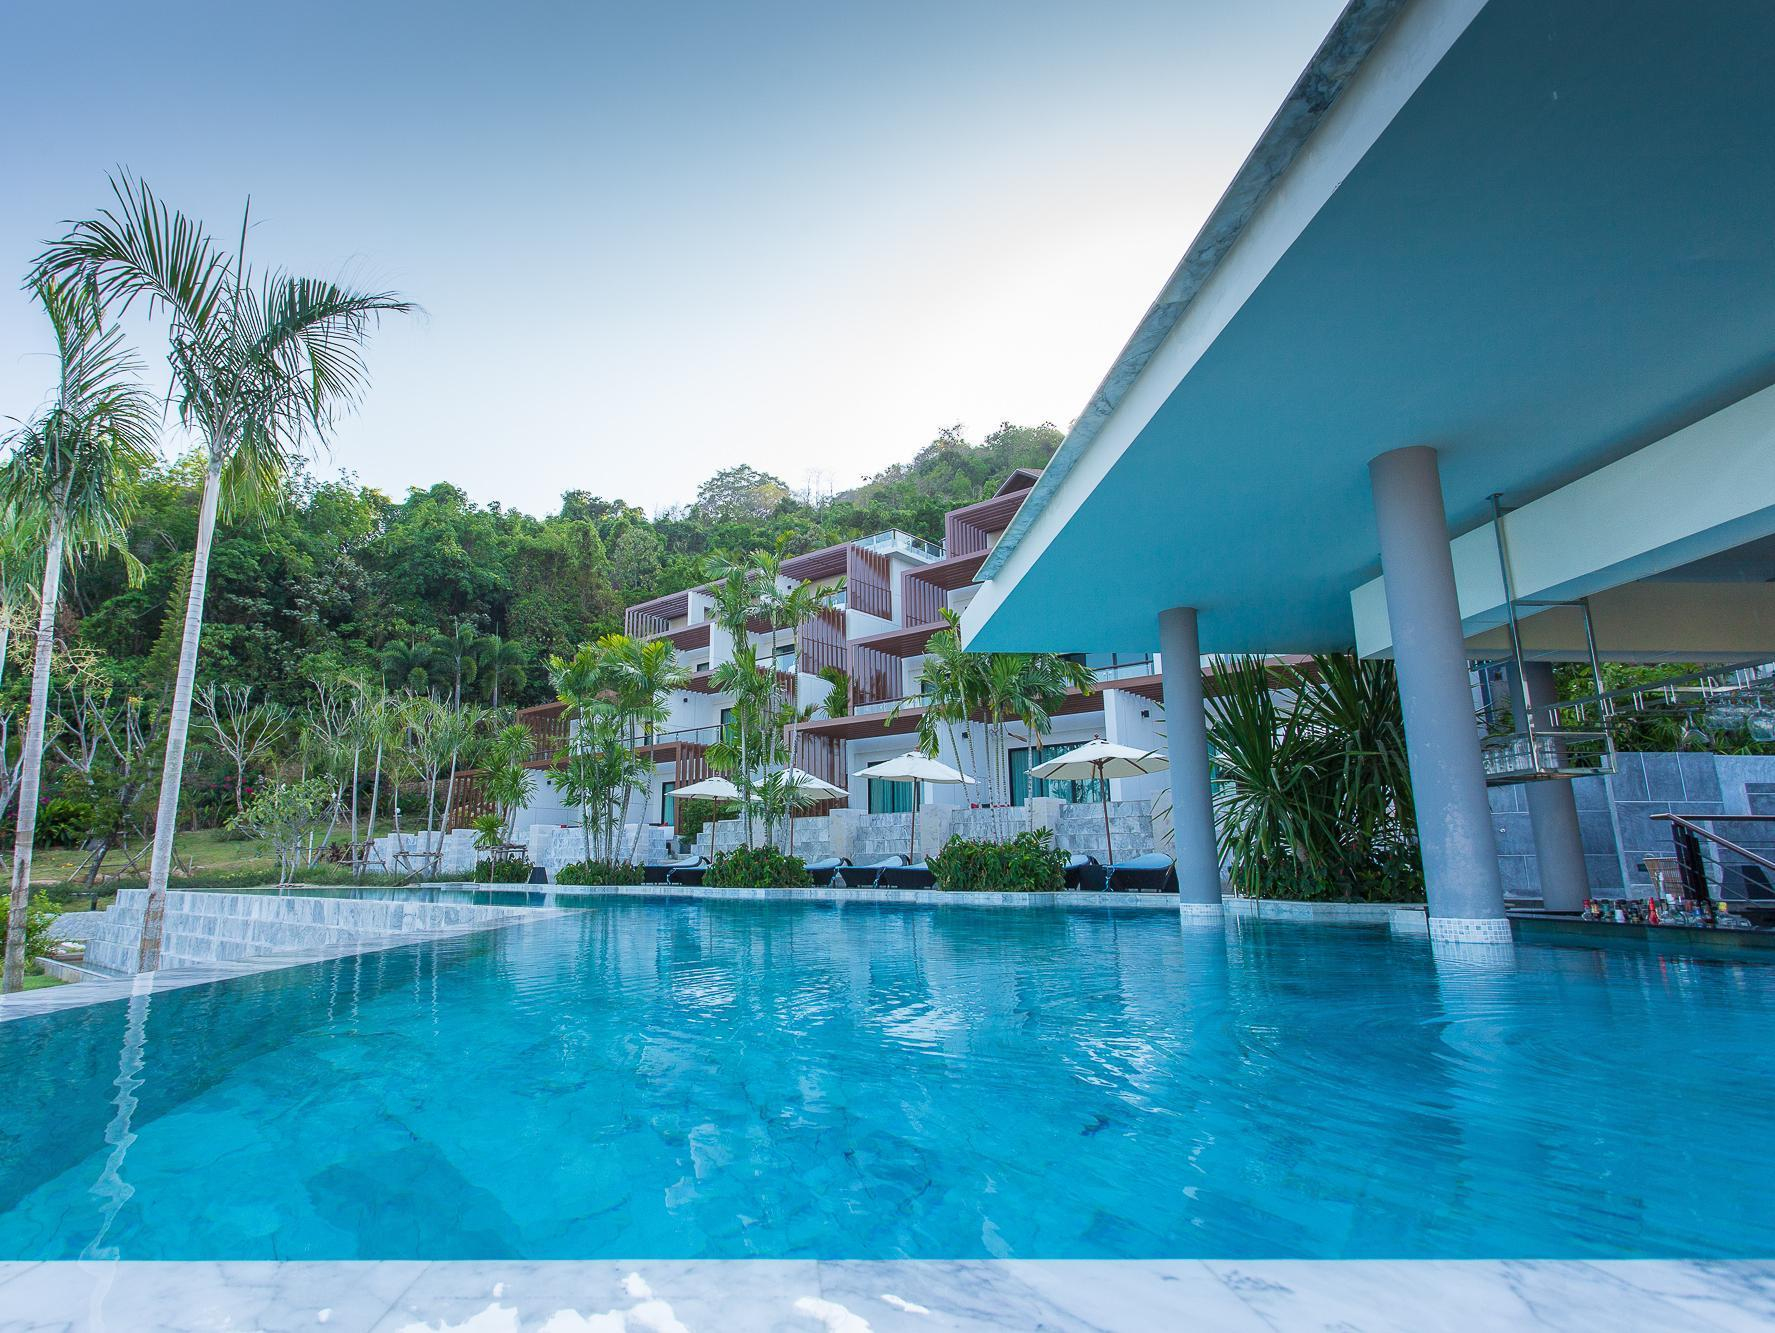 Chalong Chalet Resort & Longstay Phuket